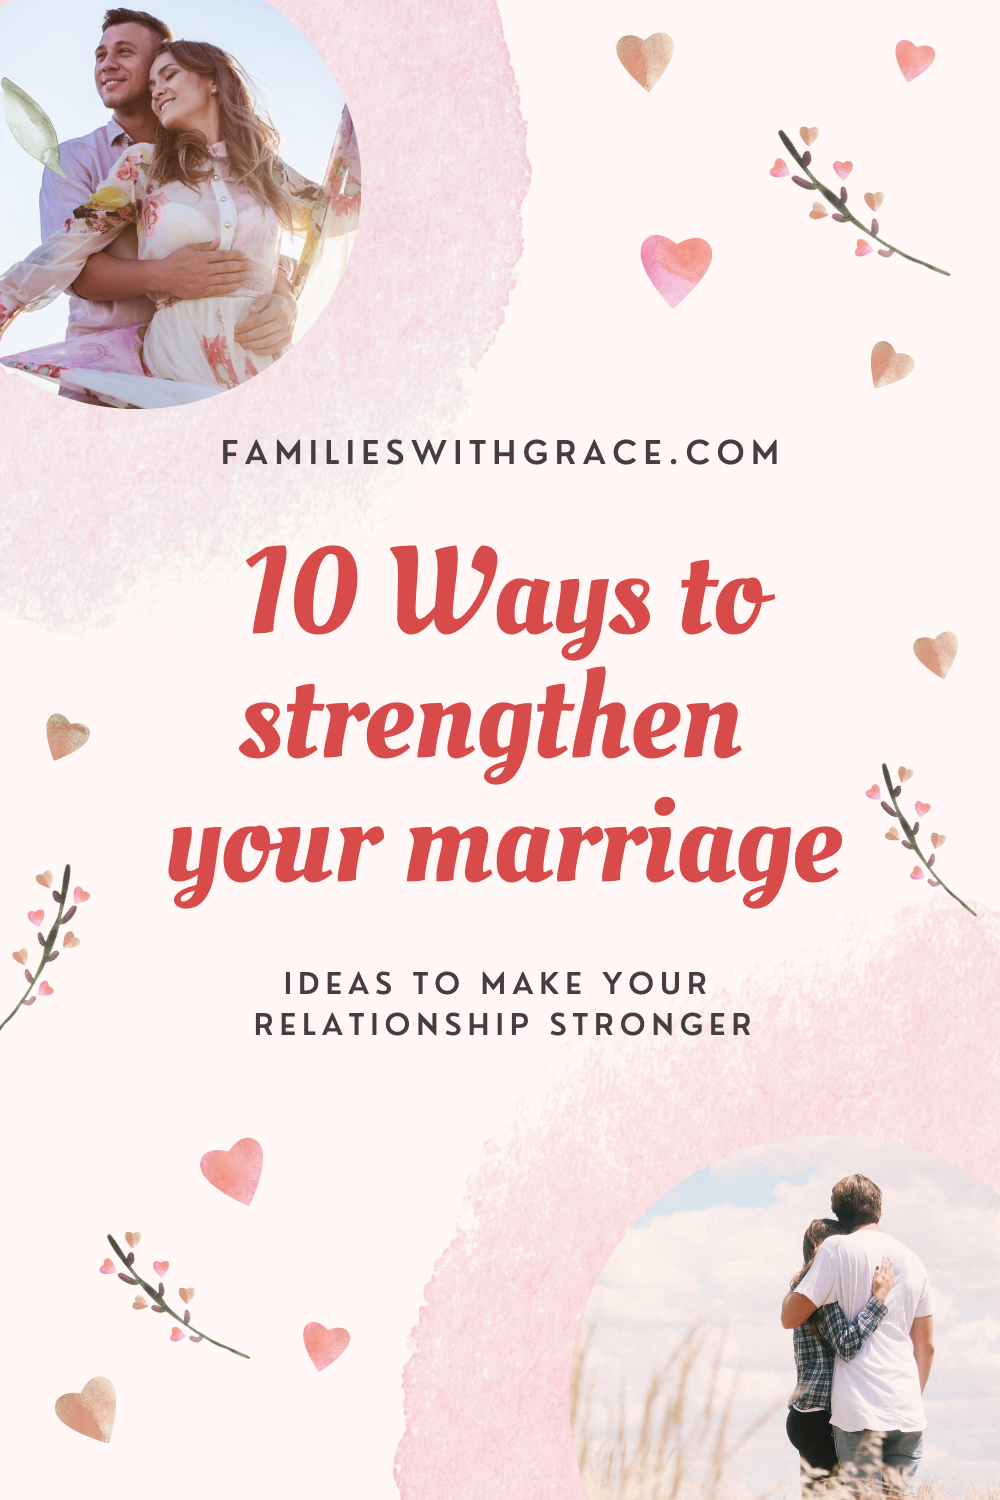 10 Ways to strengthen your marriage